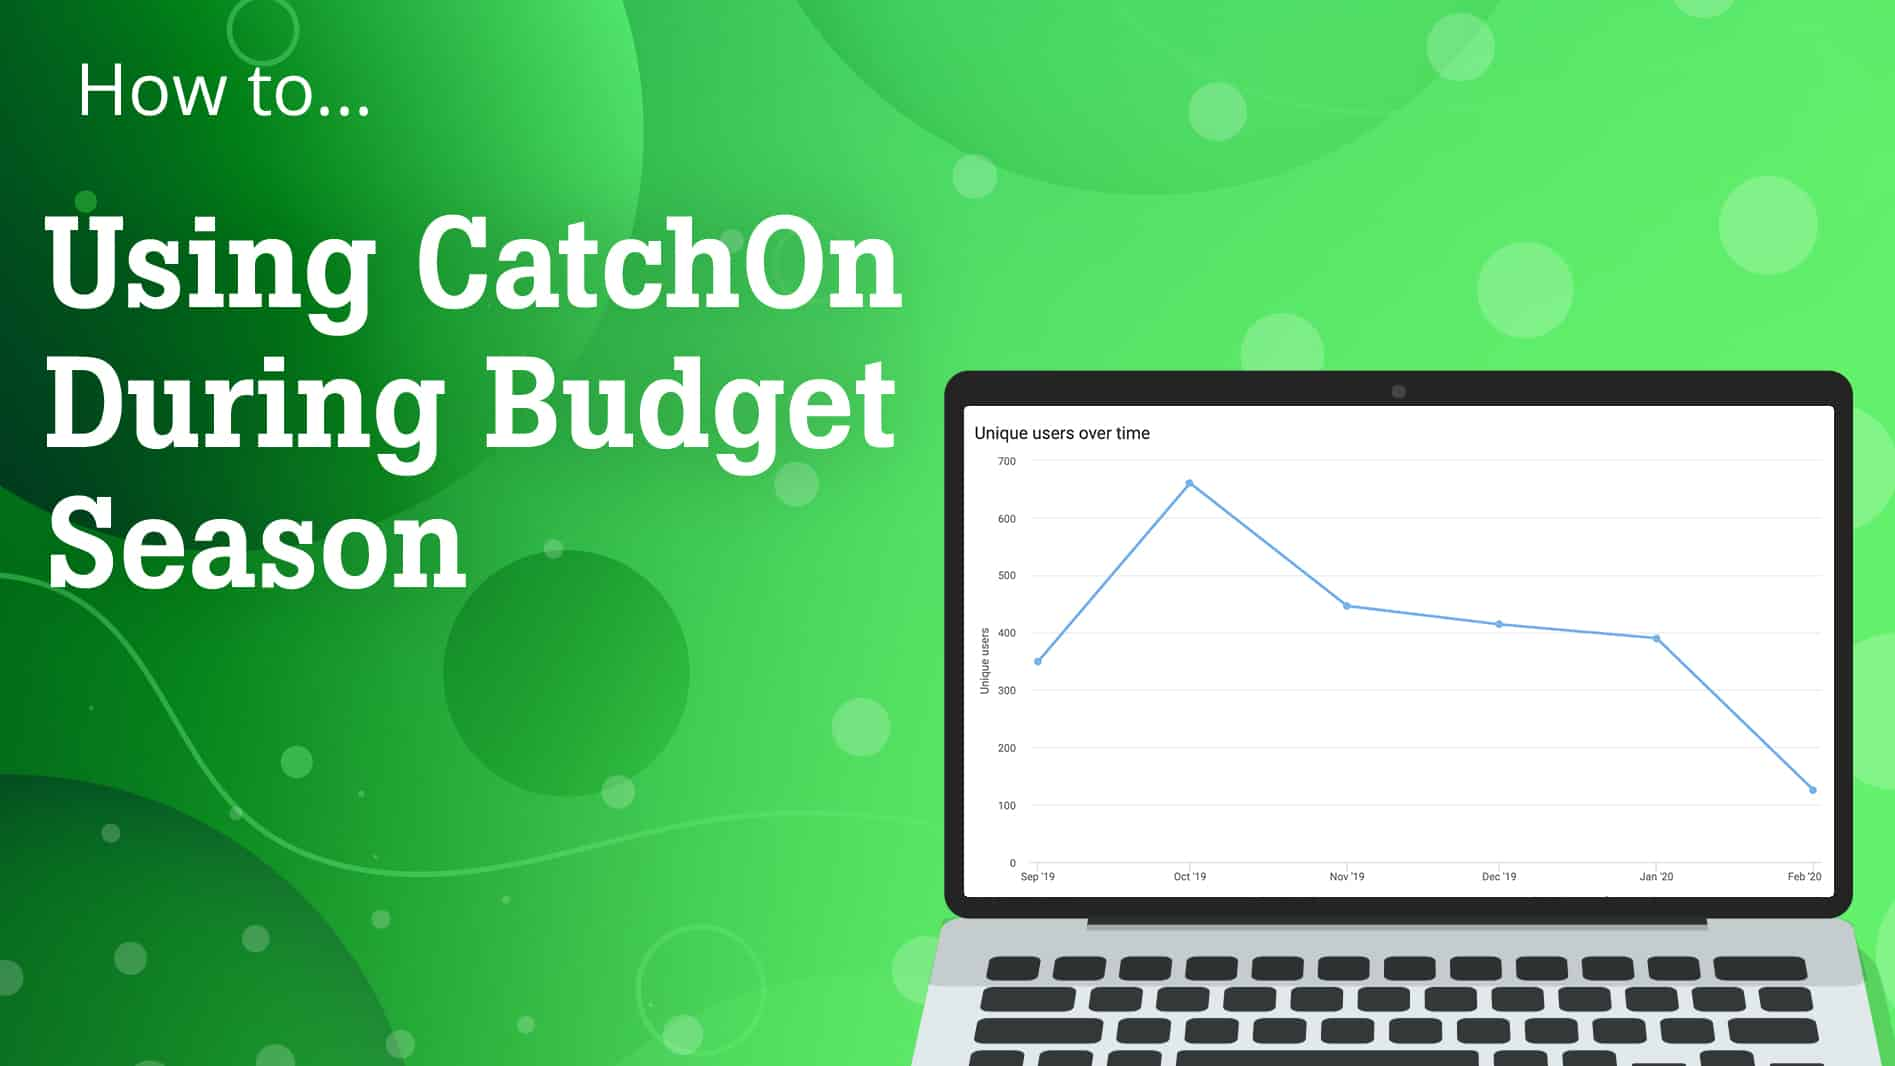 CatchOn HowTo Featured Using CatchOn In Budget Season